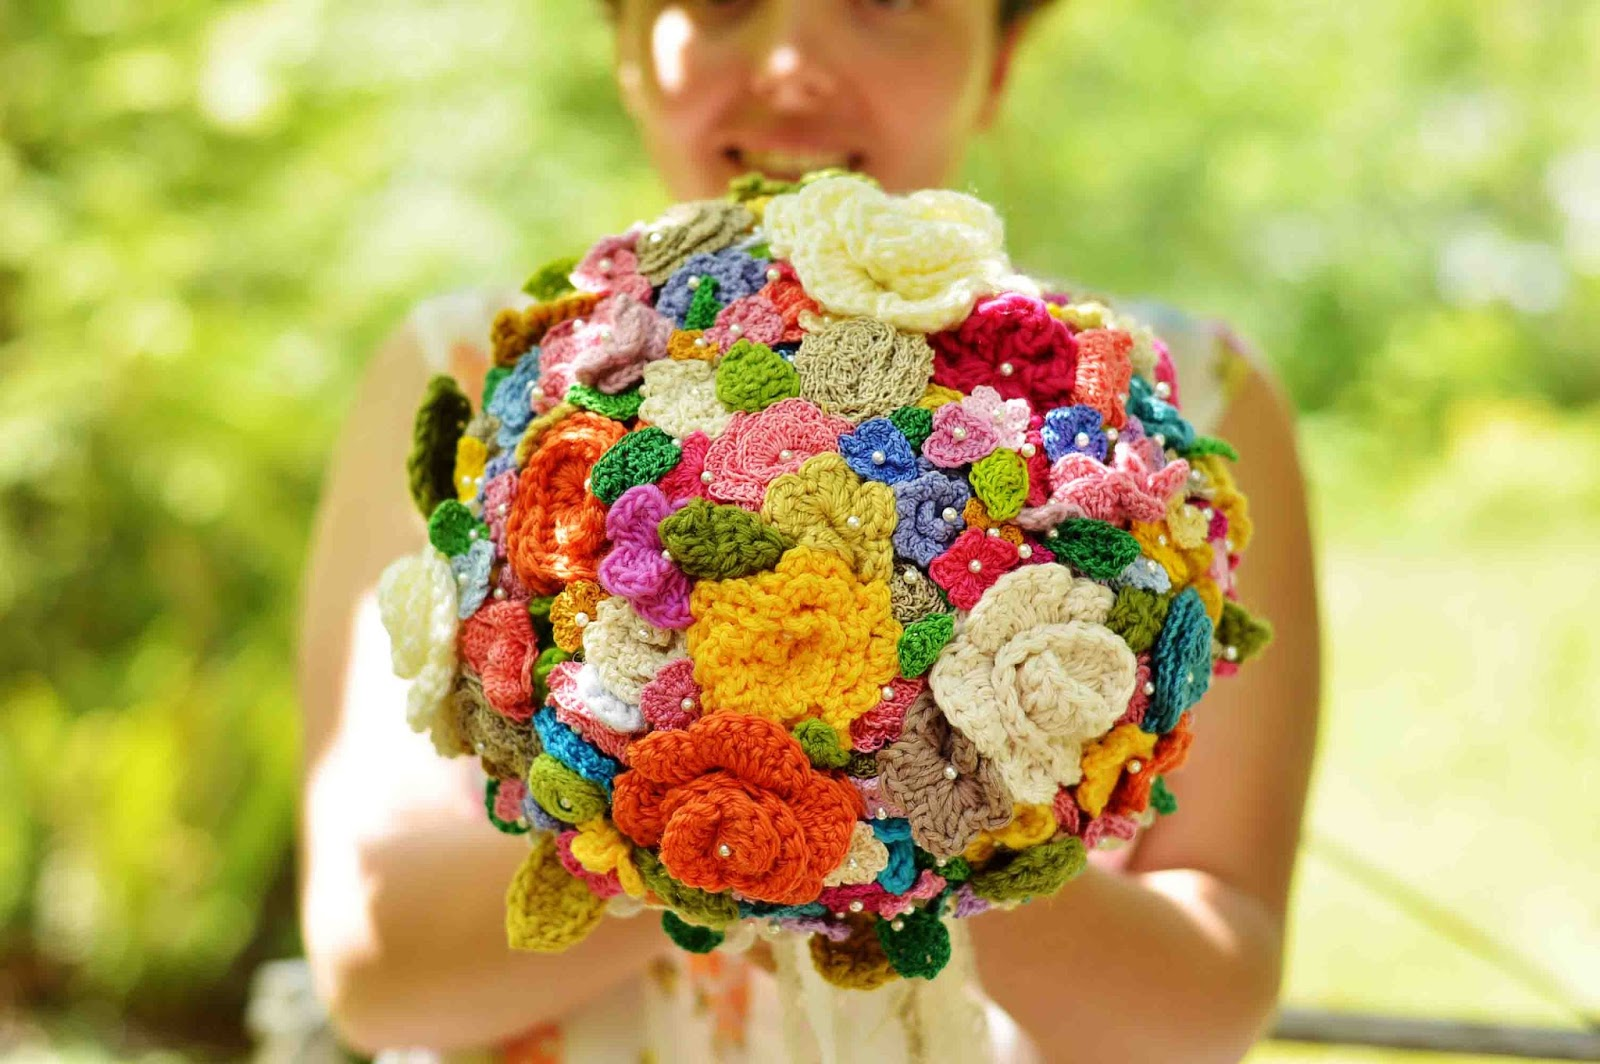 Maize hutton the crocheted flower wedding bouquet the crocheted flower wedding bouquet izmirmasajfo